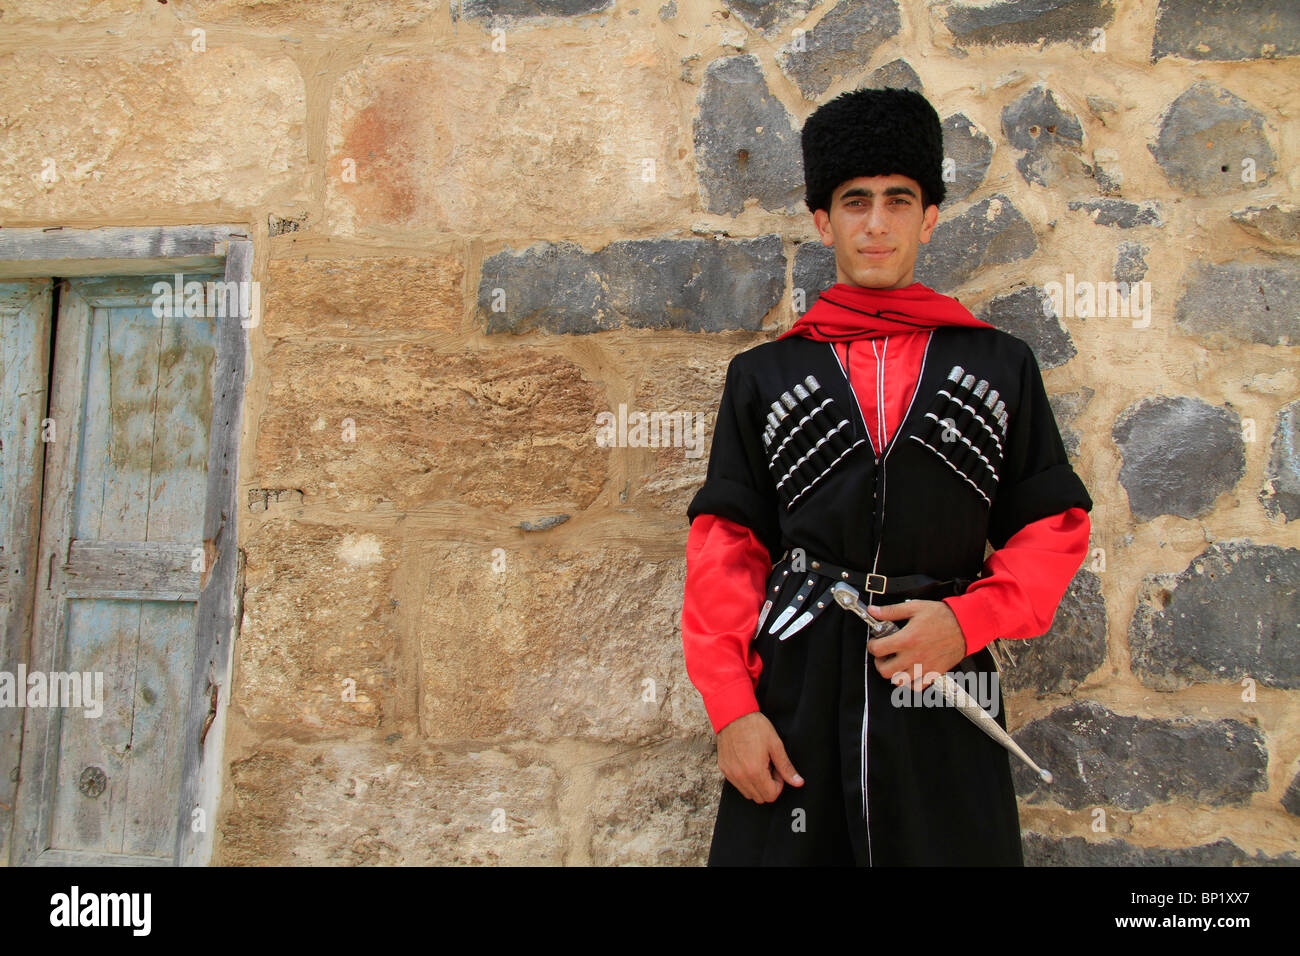 israel lower galilee circassian man in traditional